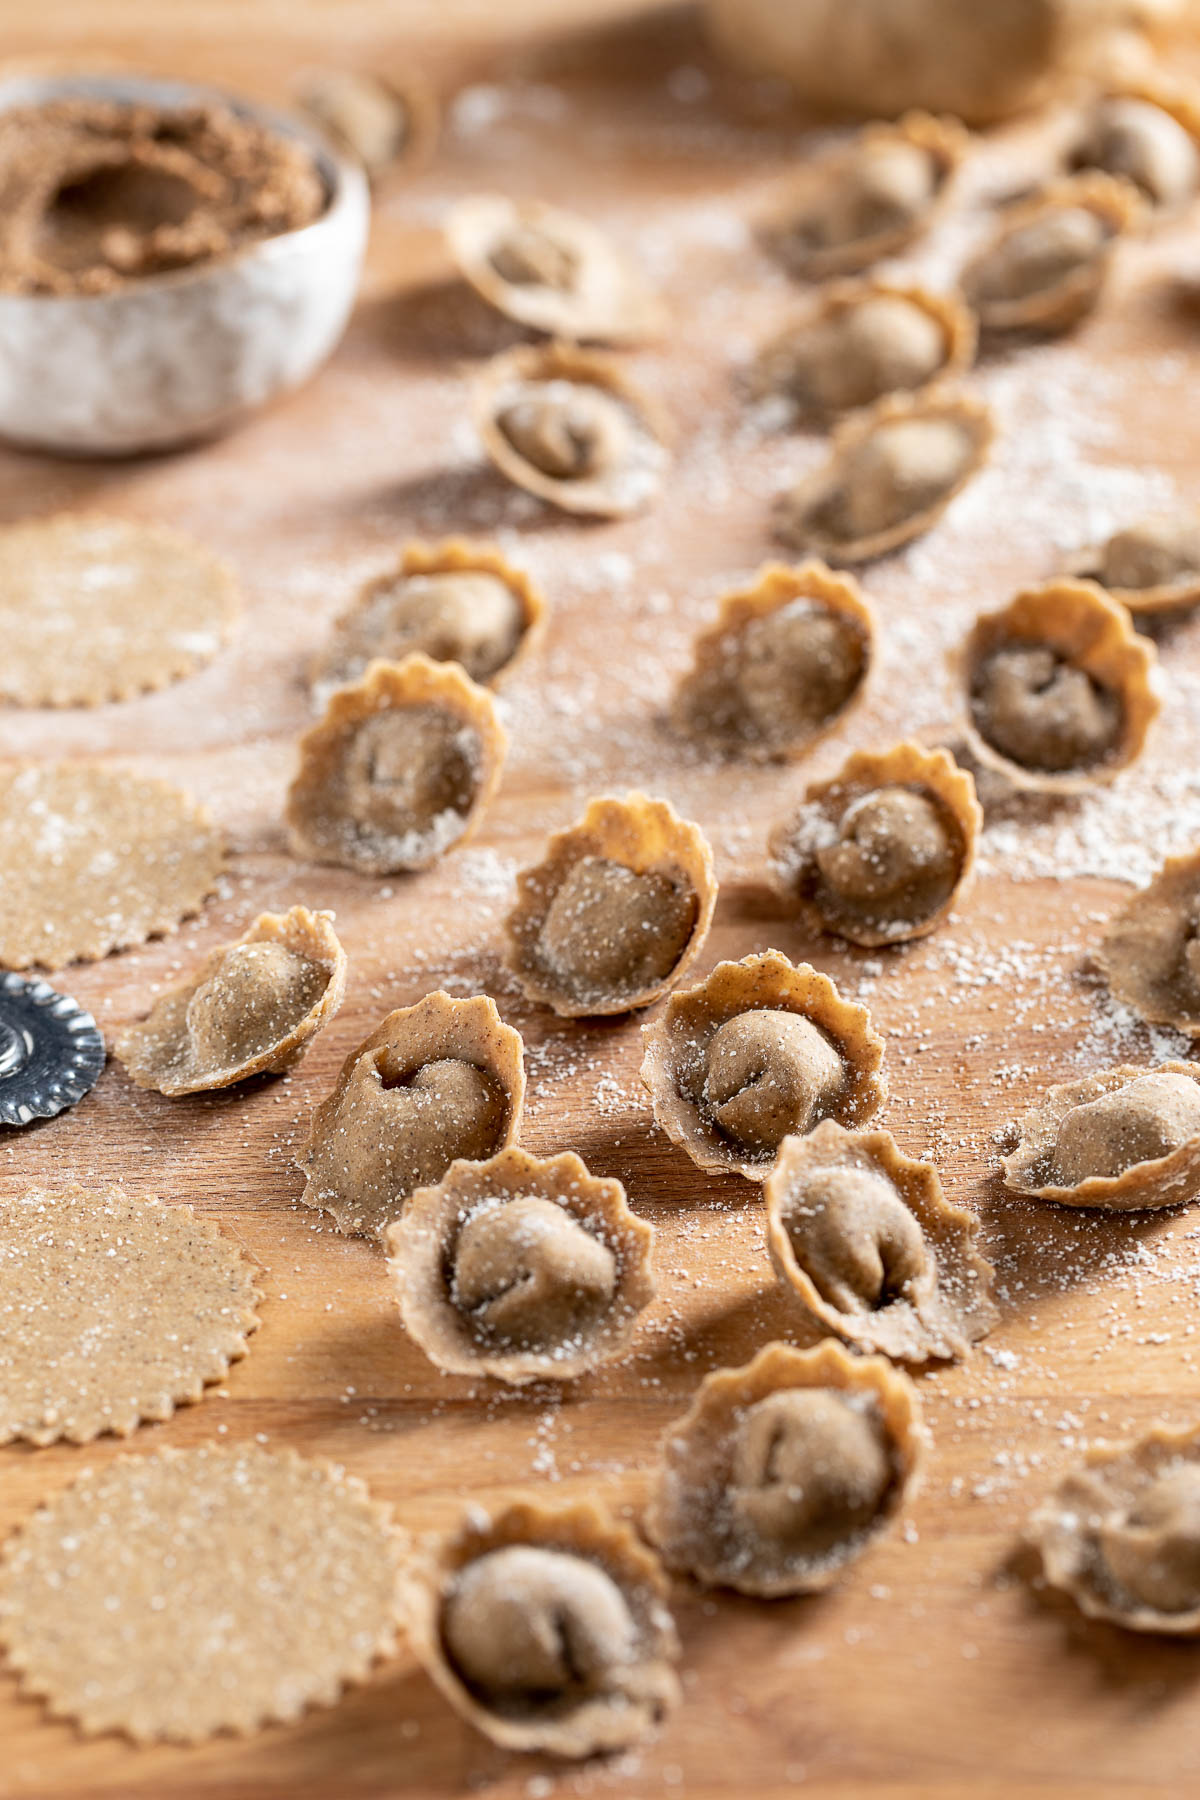 Come preparare i ravioli vegan fatti in casa in brodo o in padella con ripieno di lenticchie How to make homemade vegan tortelli with lentils mushrooms and walnuts